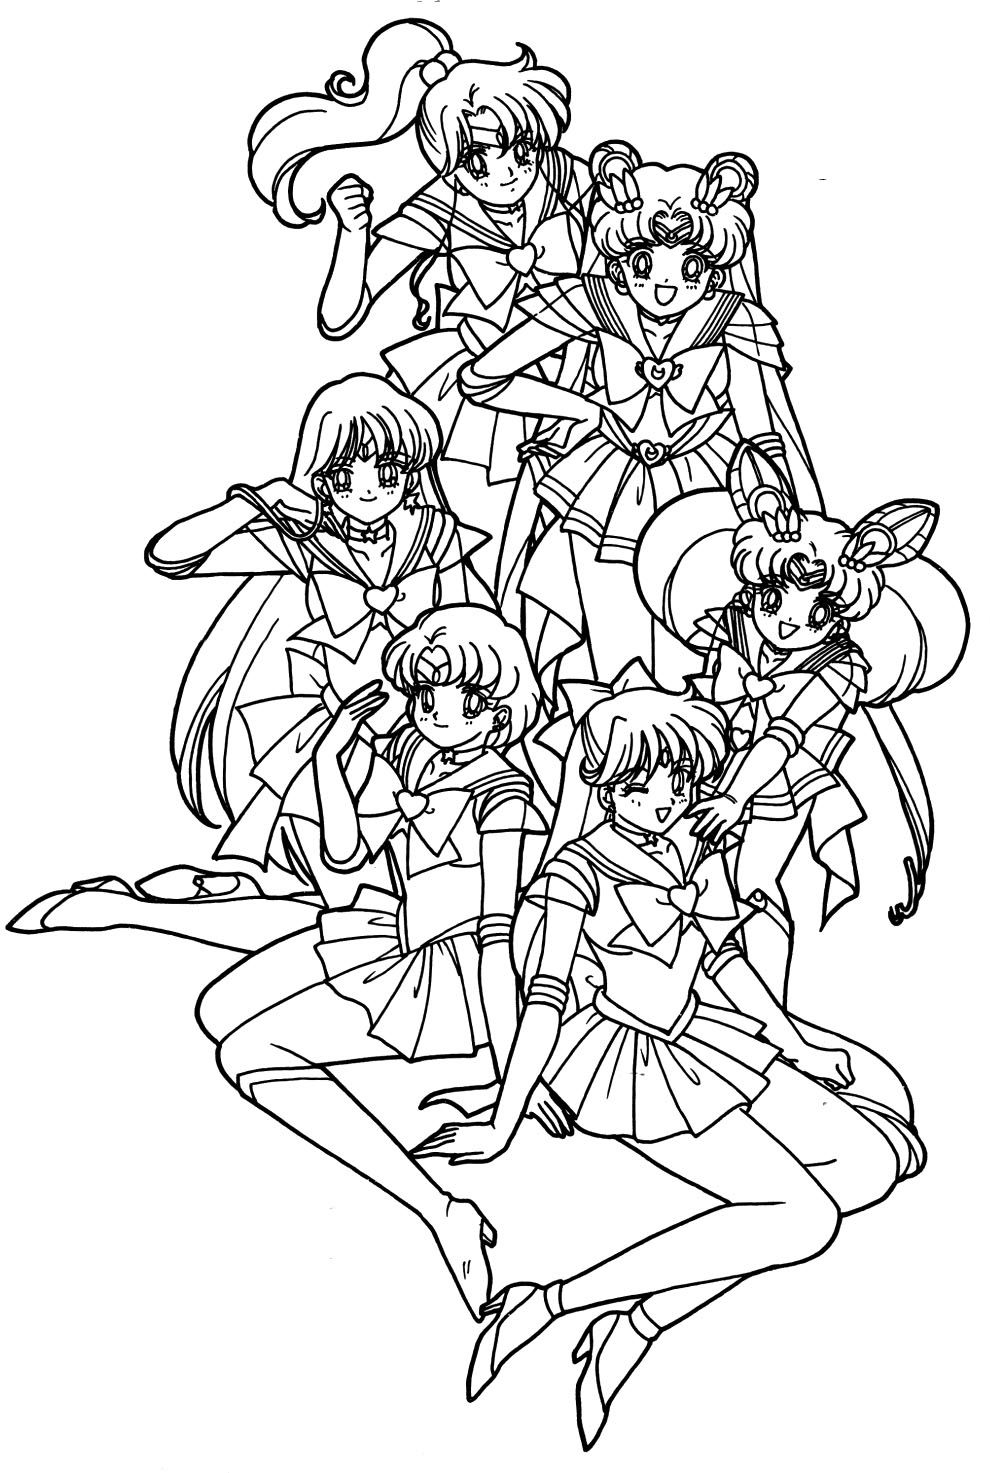 Sailor Moon Really Like With Her Friend Coloring Pages Moon Coloring Pages Sailor Moon Coloring Pages Coloring Pages